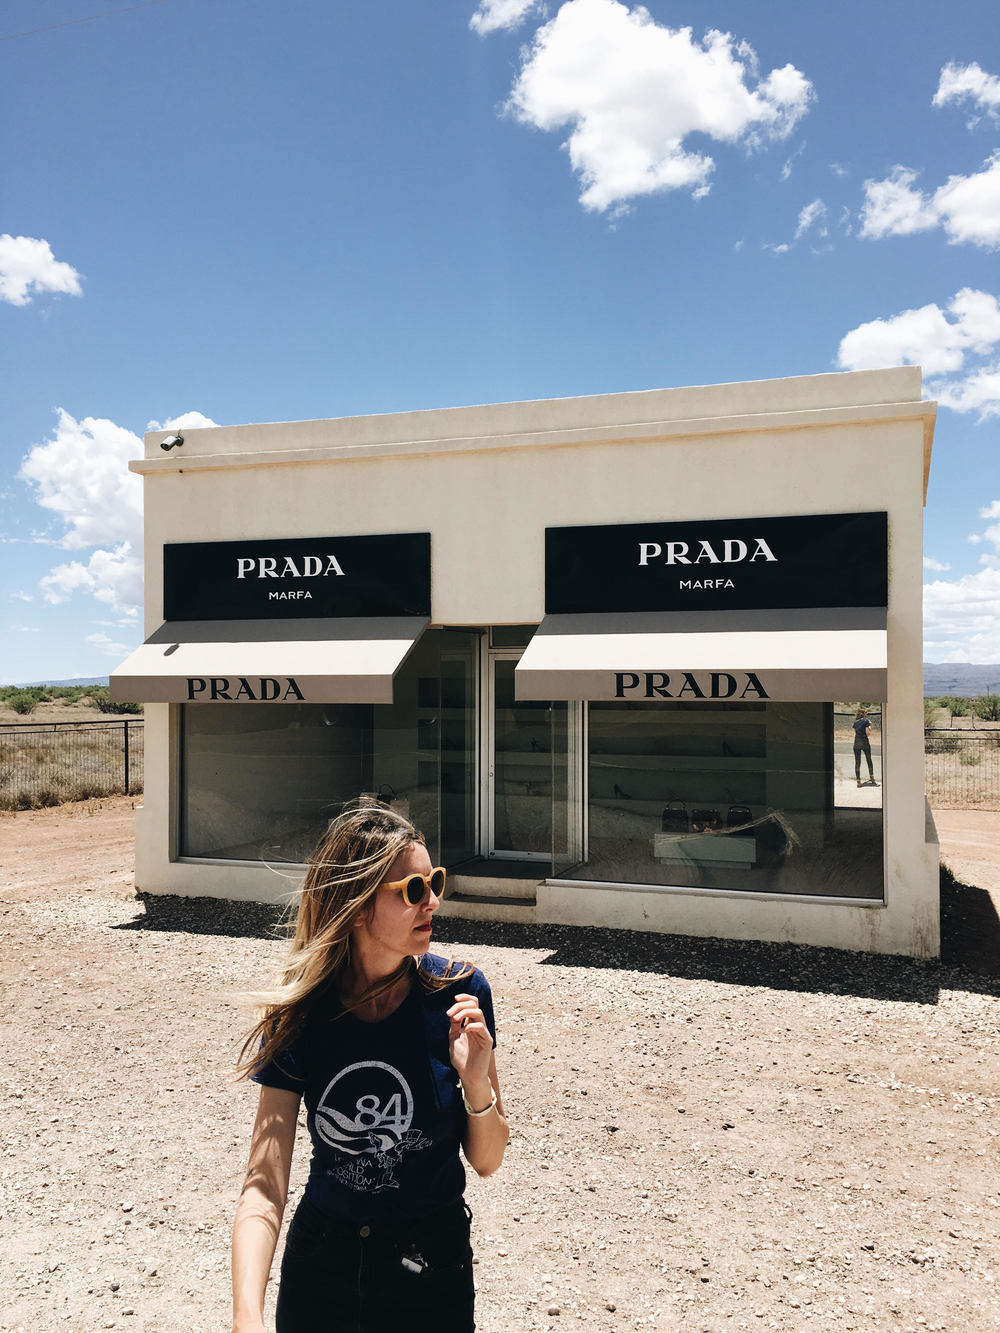 Stopping at Prada Marfa in Valentine, Texas. The product in the Art exhibit is from Prada's 2005 collection. It's been sitting enjoying the company of hundreds of moths and dust balls for quite some time.